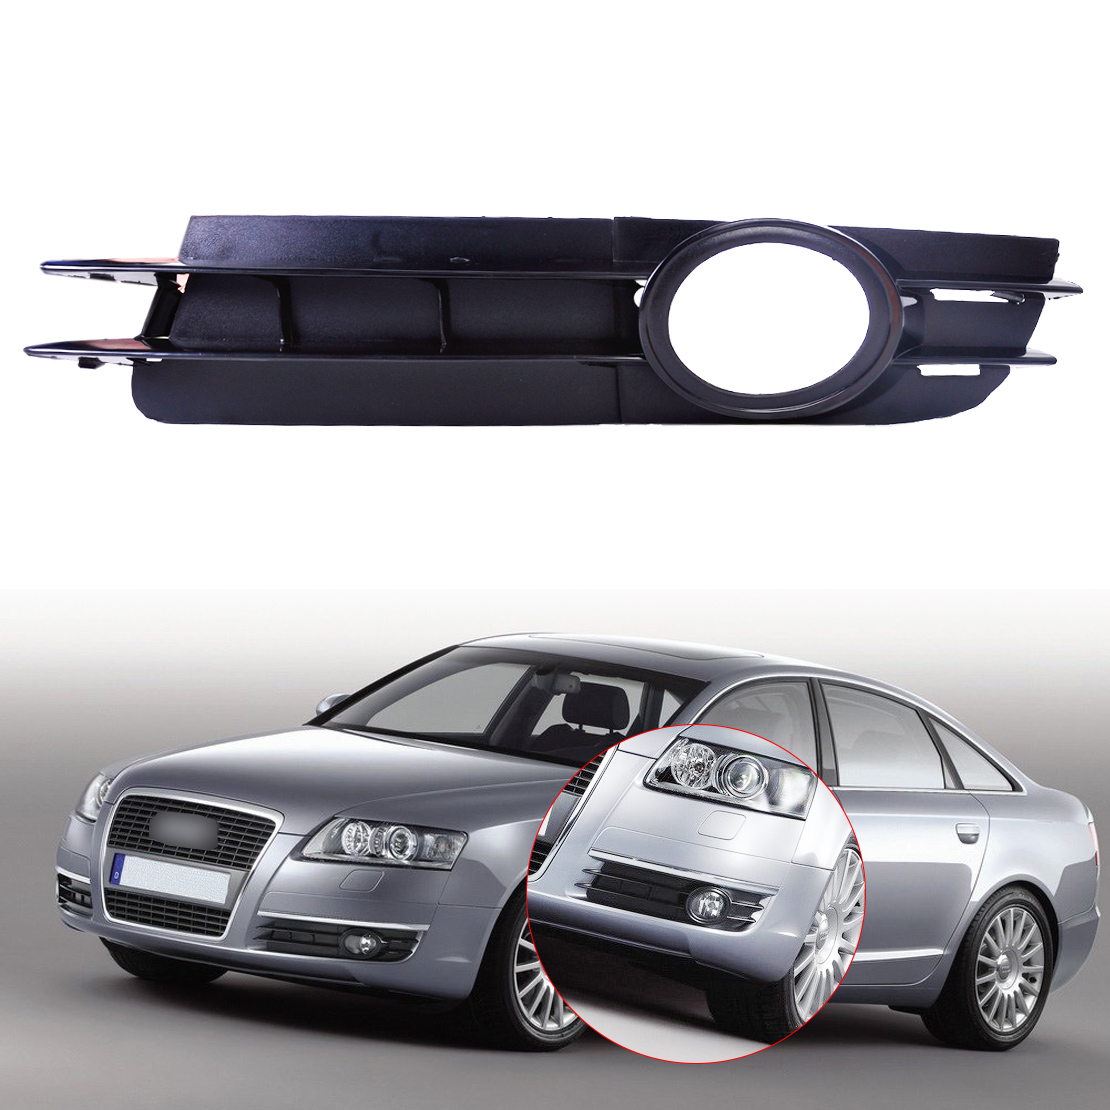 DWCX 4F0807681A Front Left Bumper Fog Light Lamp Grill Grille For Audi A6 / A6 Quattro C6 2005 2006 2007 2008 runmade for 2010 vw transporter t6 t5 before facelift lower bumper grill fog cover fog light lamp set left